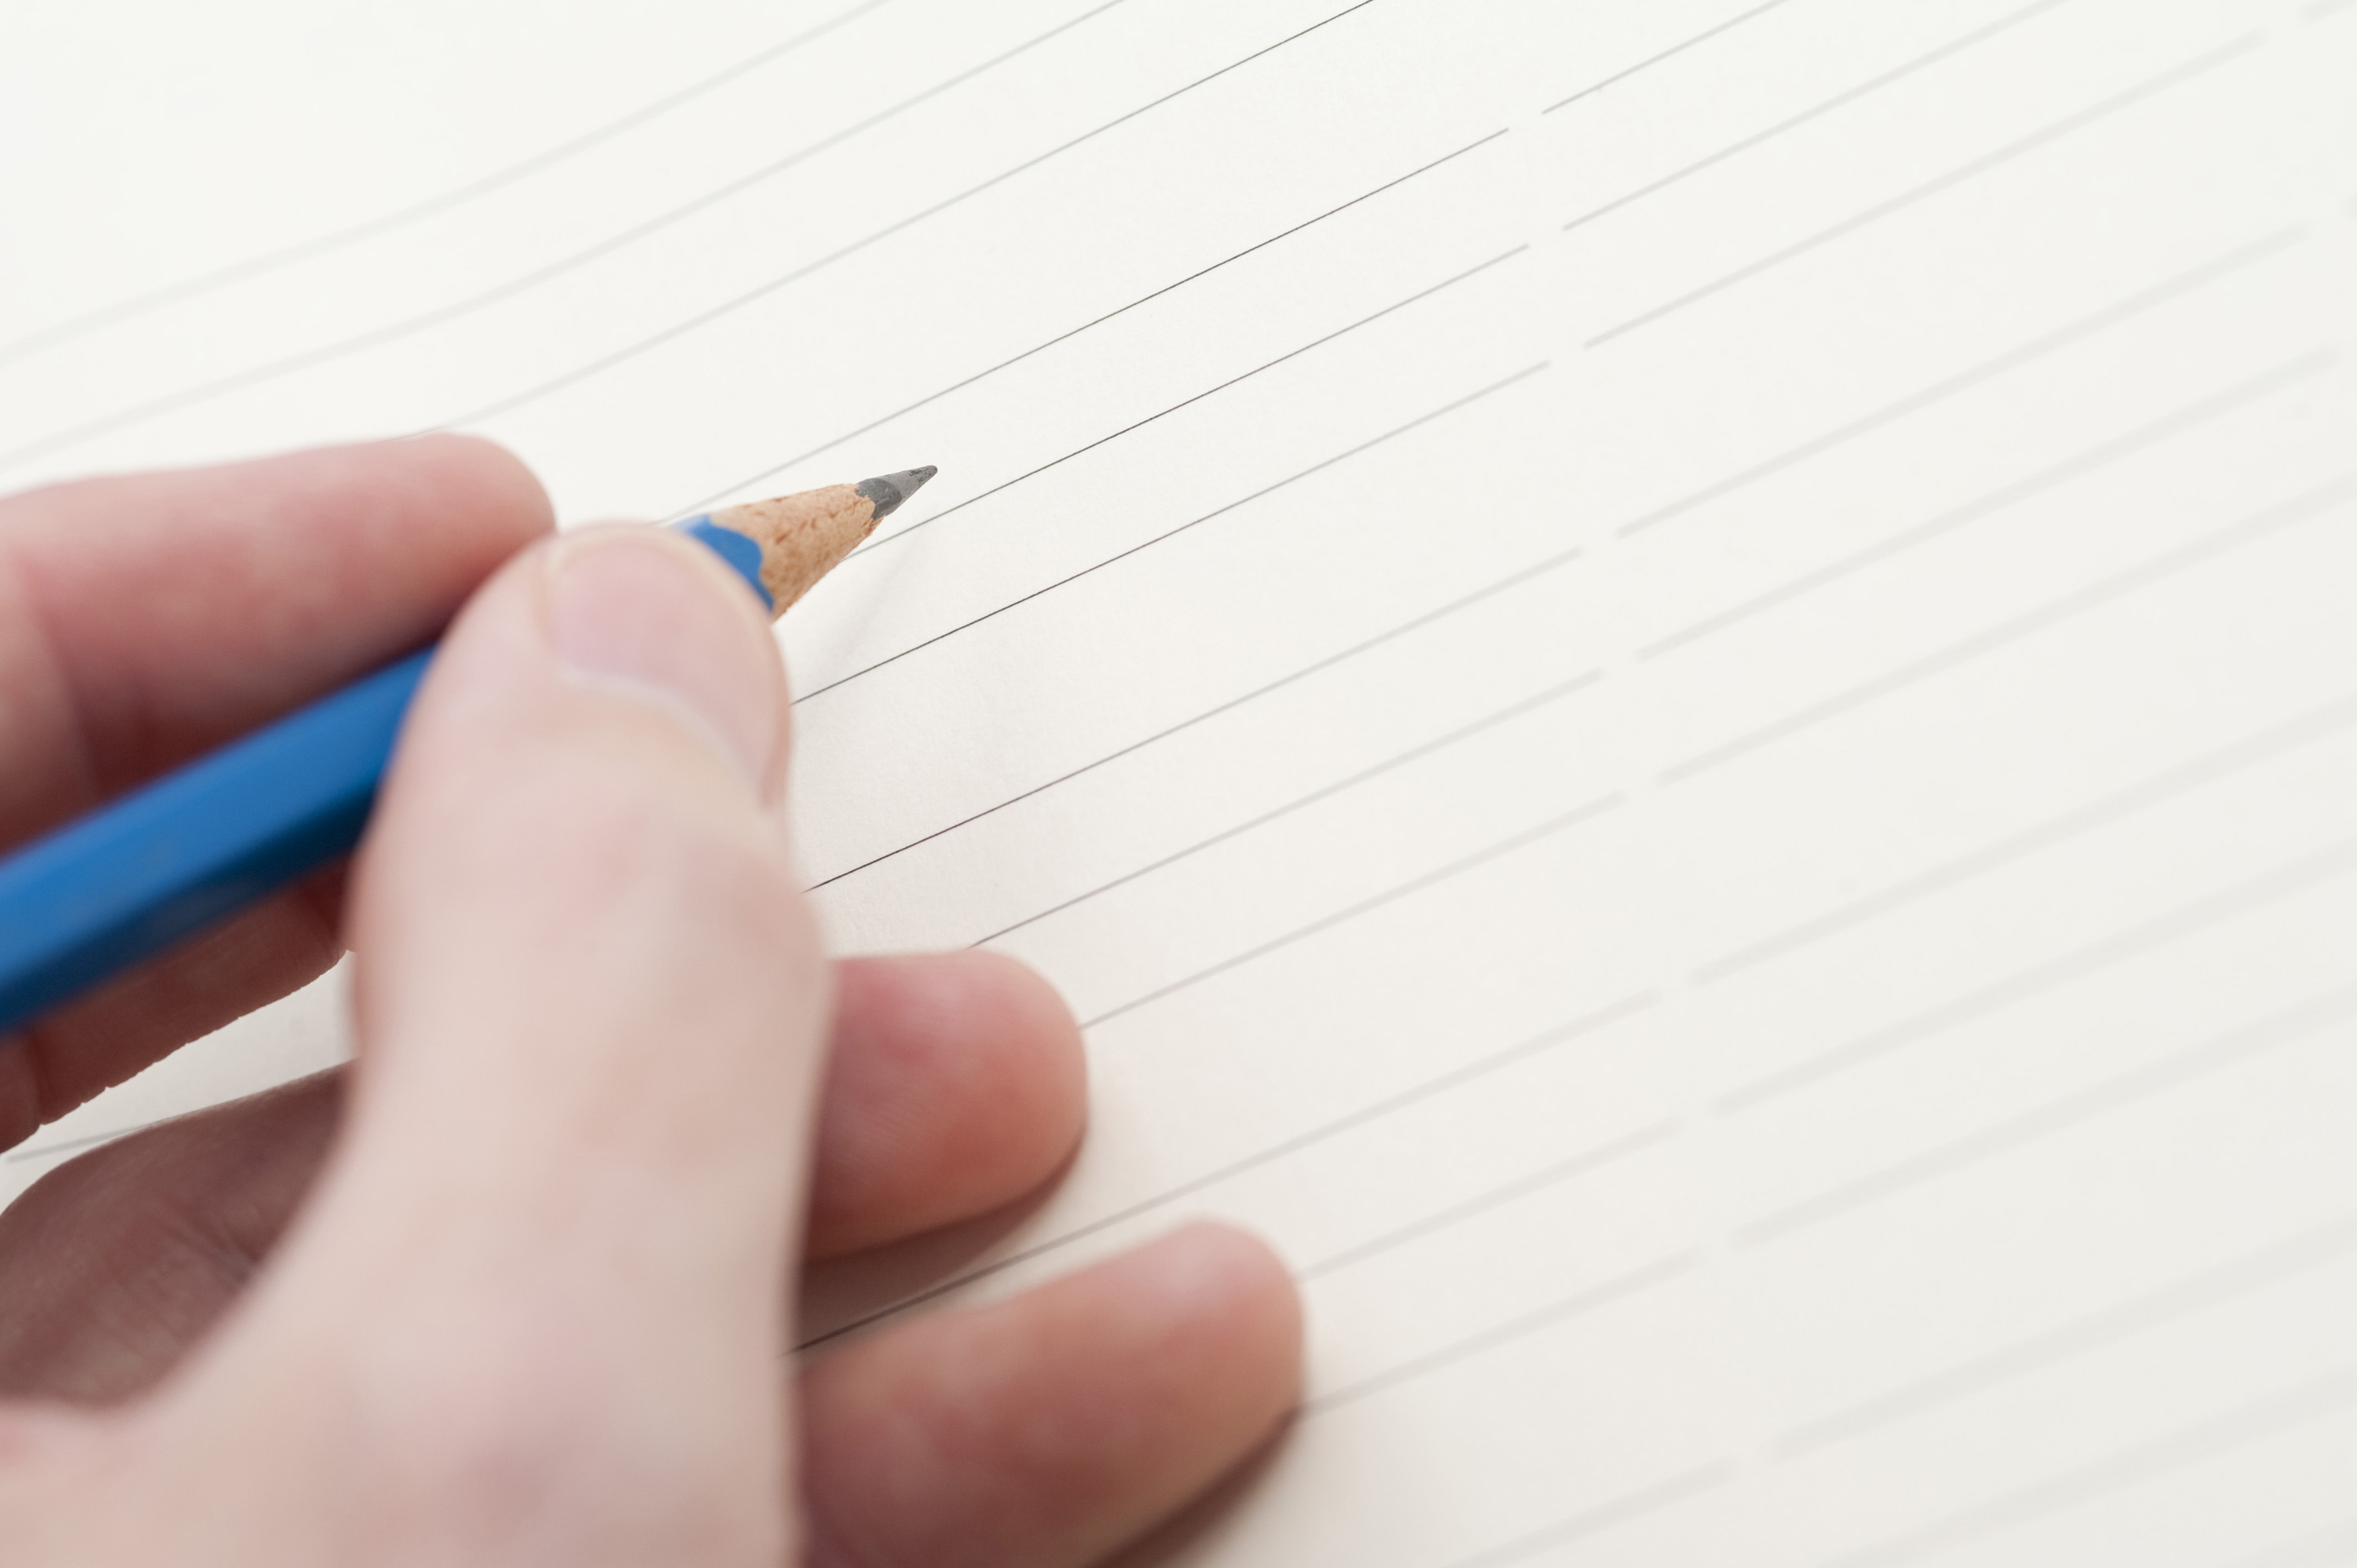 free image of hand holding pencil ready to write